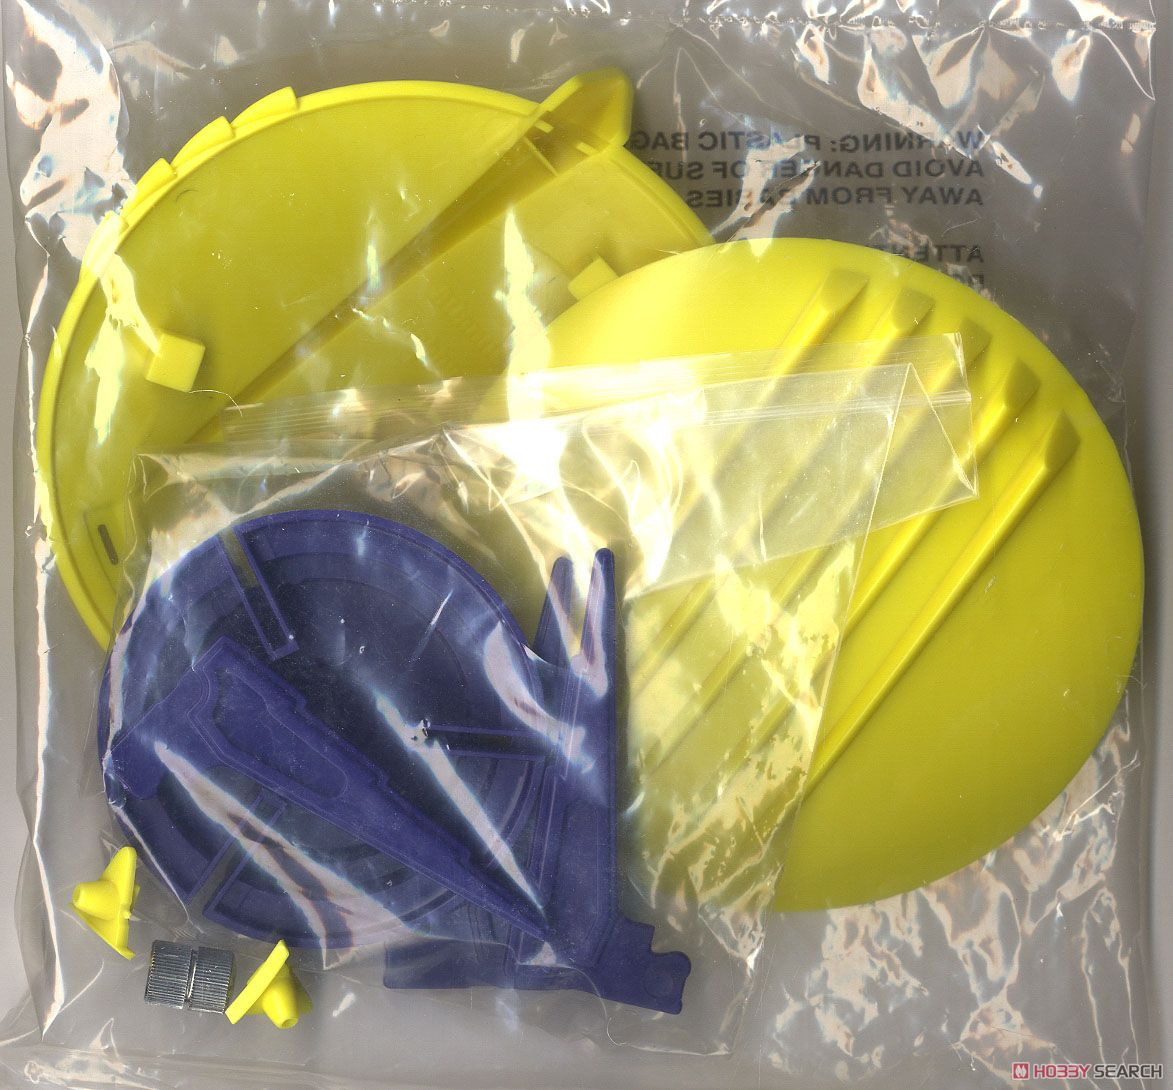 Vic Torry and His Flying Saucer [Plastic model) Contents1